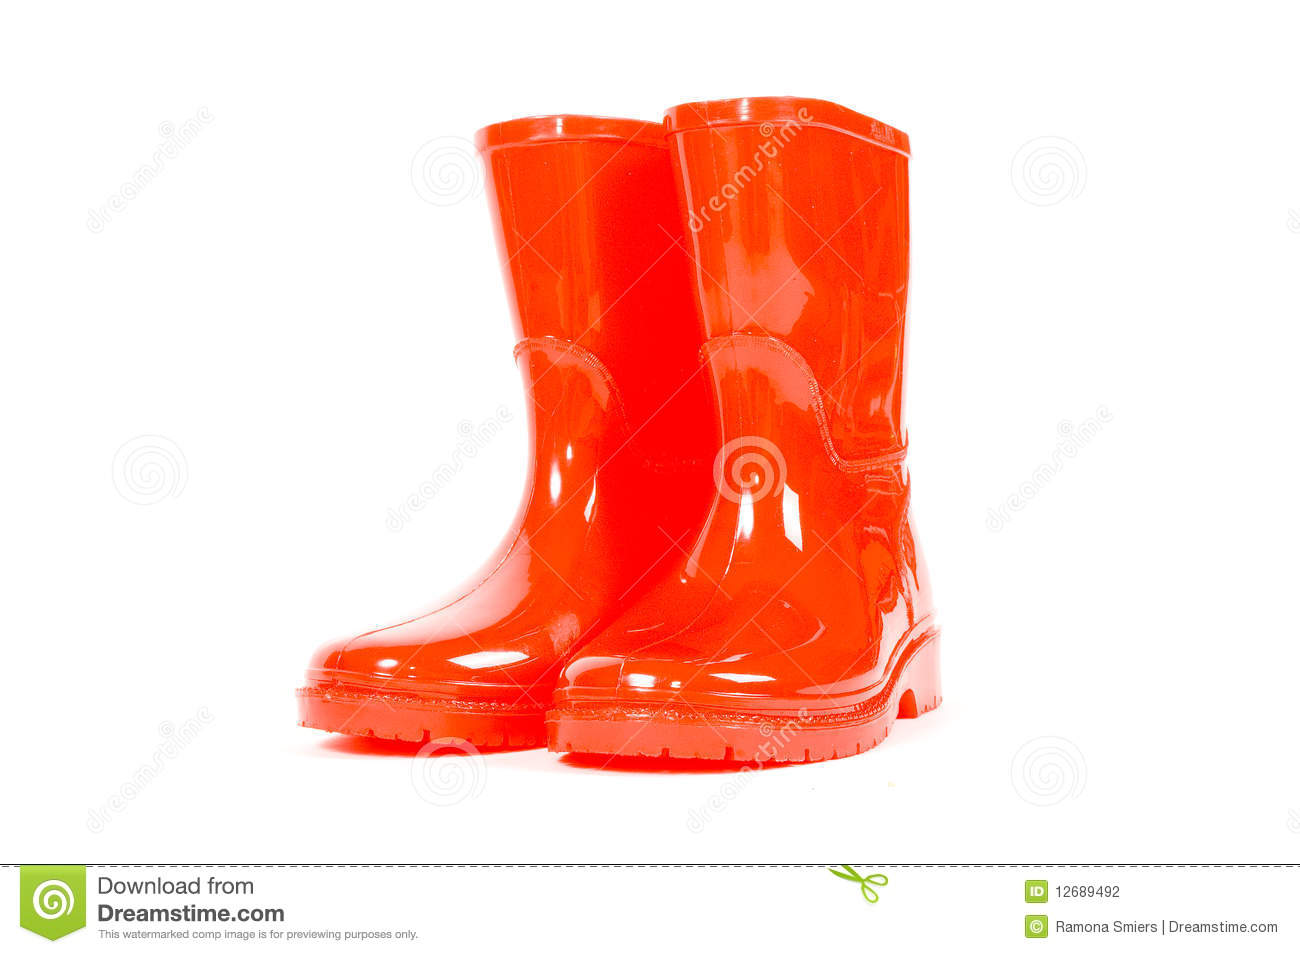 Red Rain Boots Clipart imagessearchq Red 20Rain